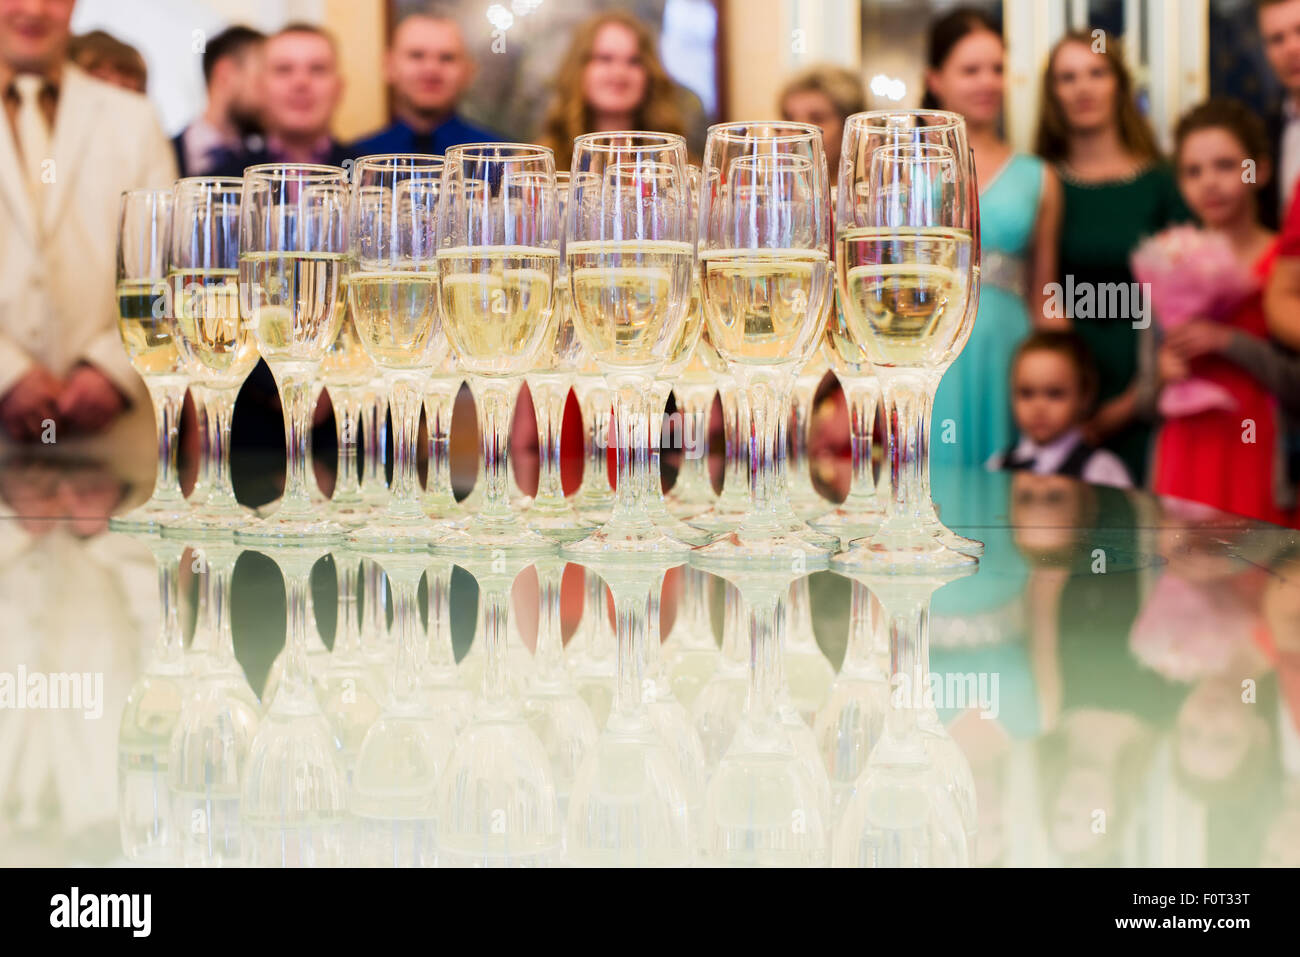 set standing on a table with glasses of champagne - Stock Image